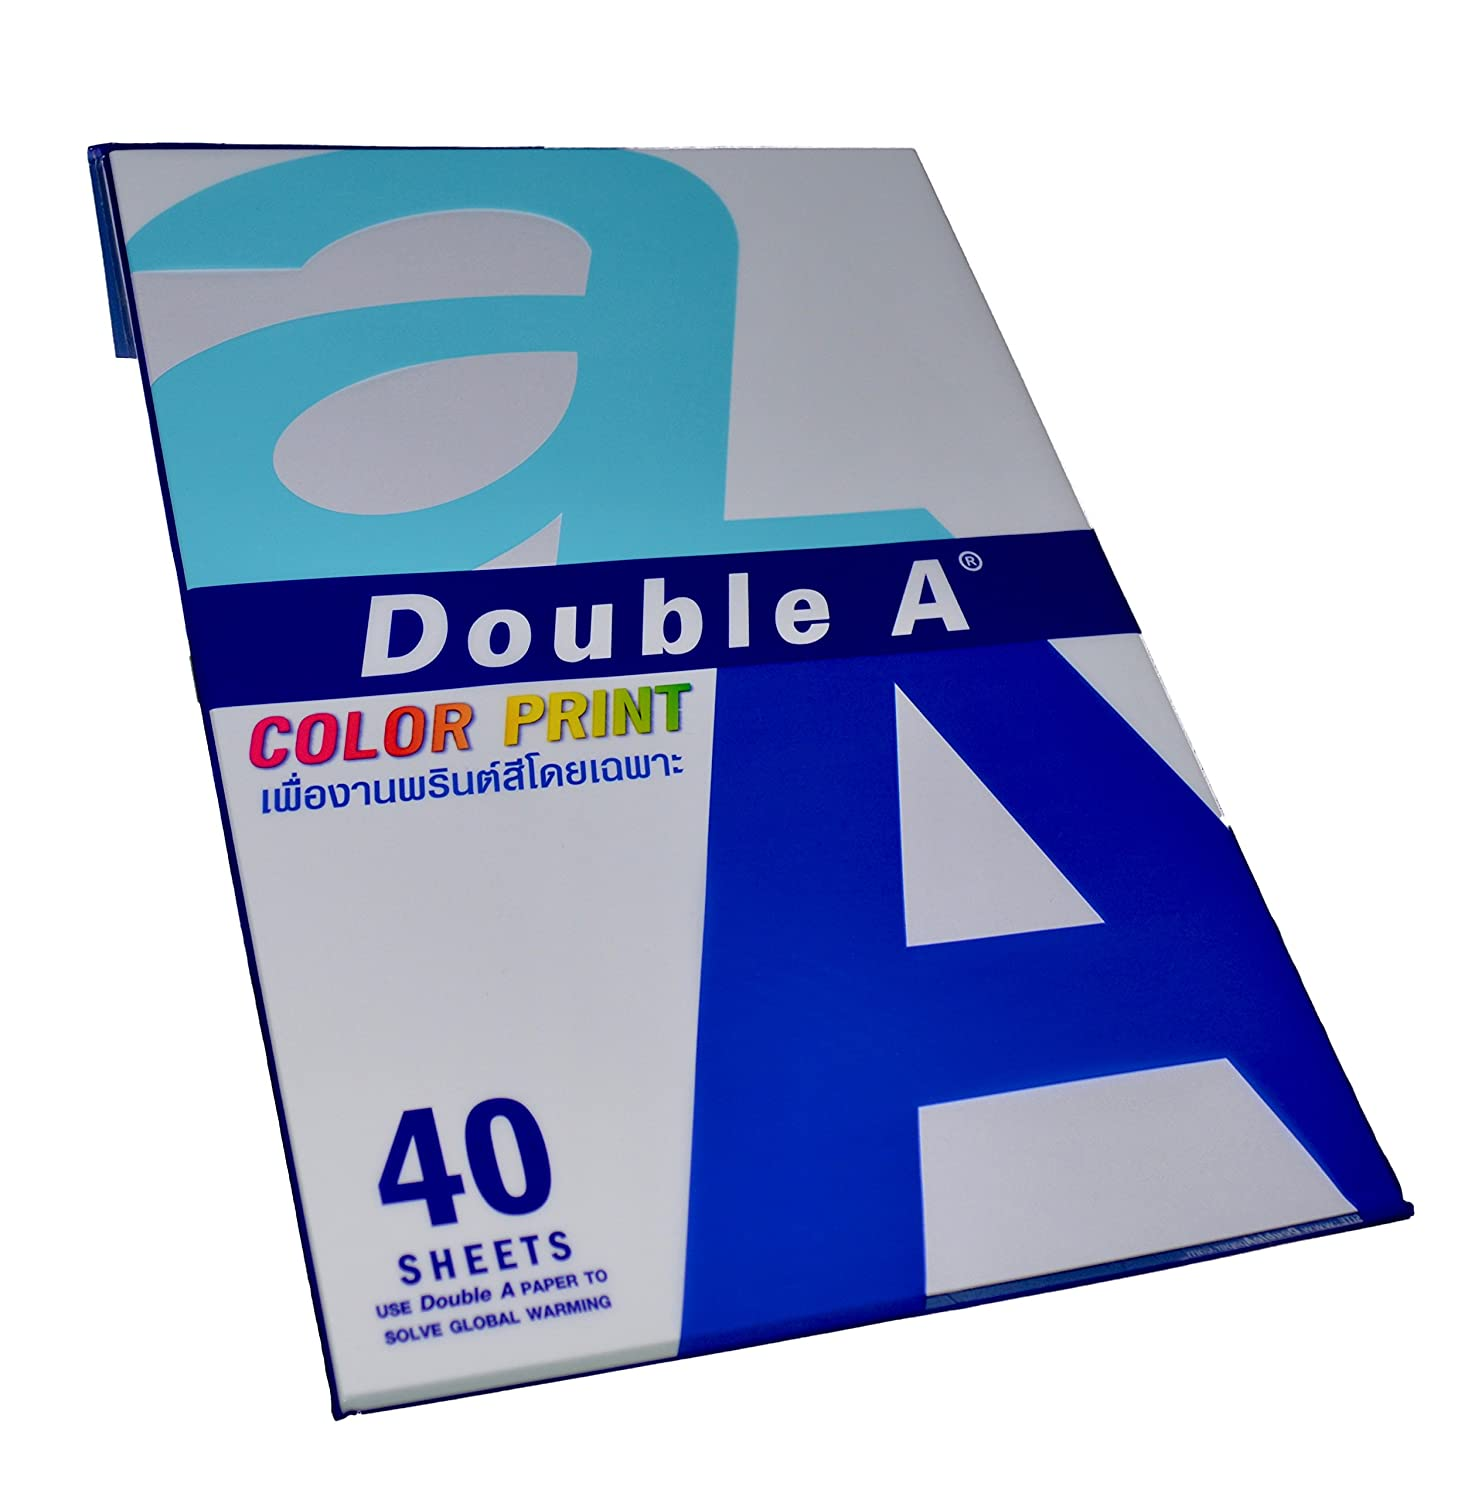 A4 Premium Printer Paper - 40 Sheets - Imported from